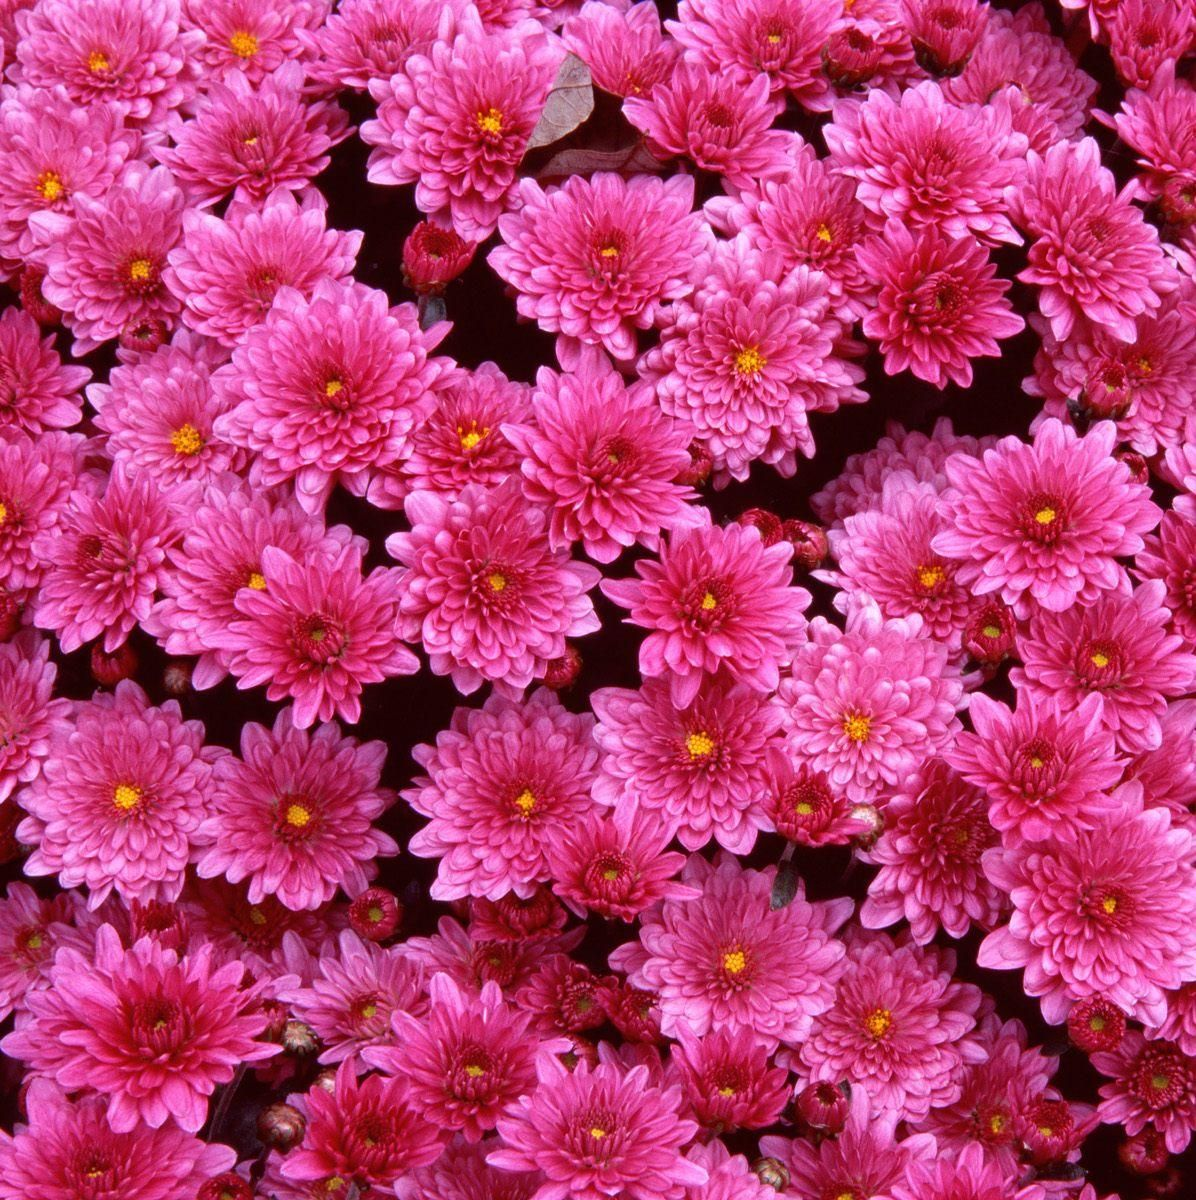 Beautiful Flowers Wallpaper Free Download Mums Flowers Beautiful Flowers Images Flower Images